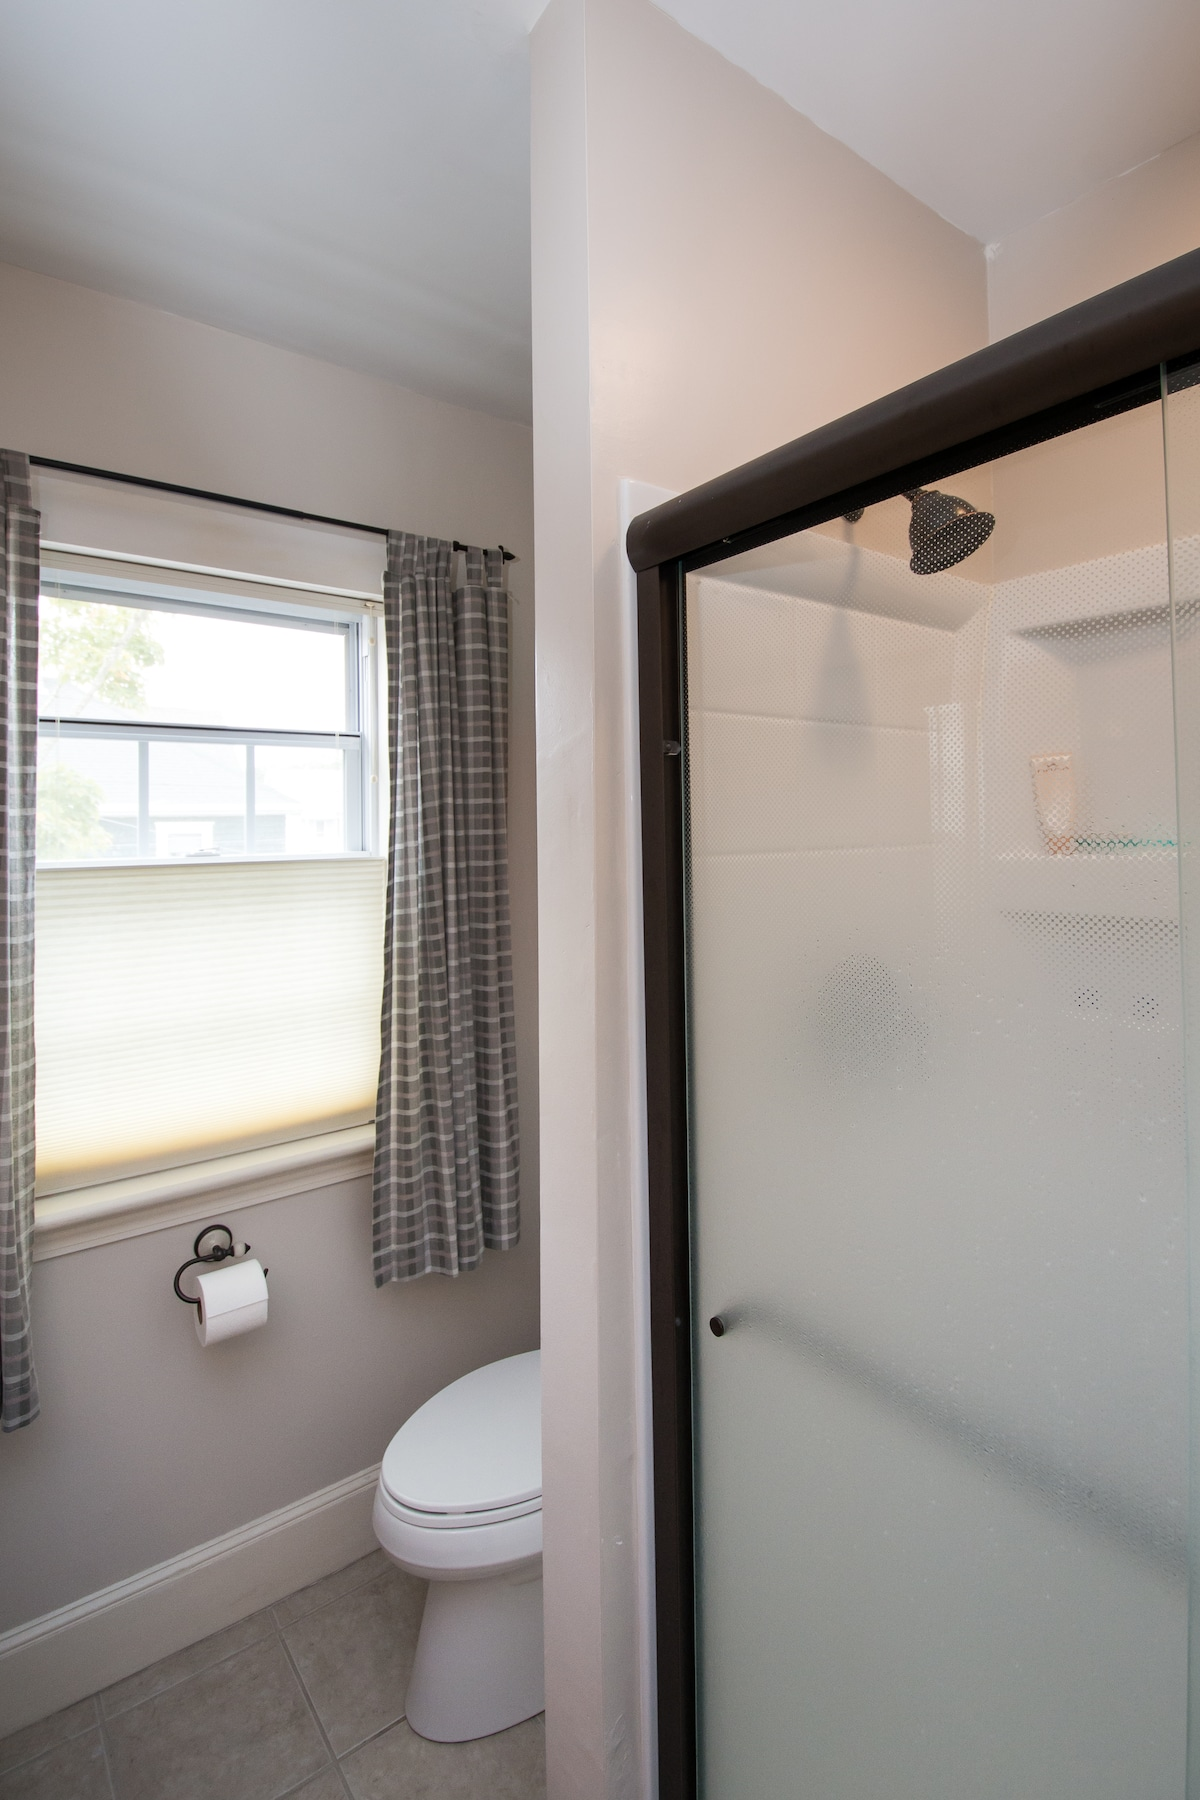 Another view of 2nd floor bathroom which includes an extra wide walk-in shower.